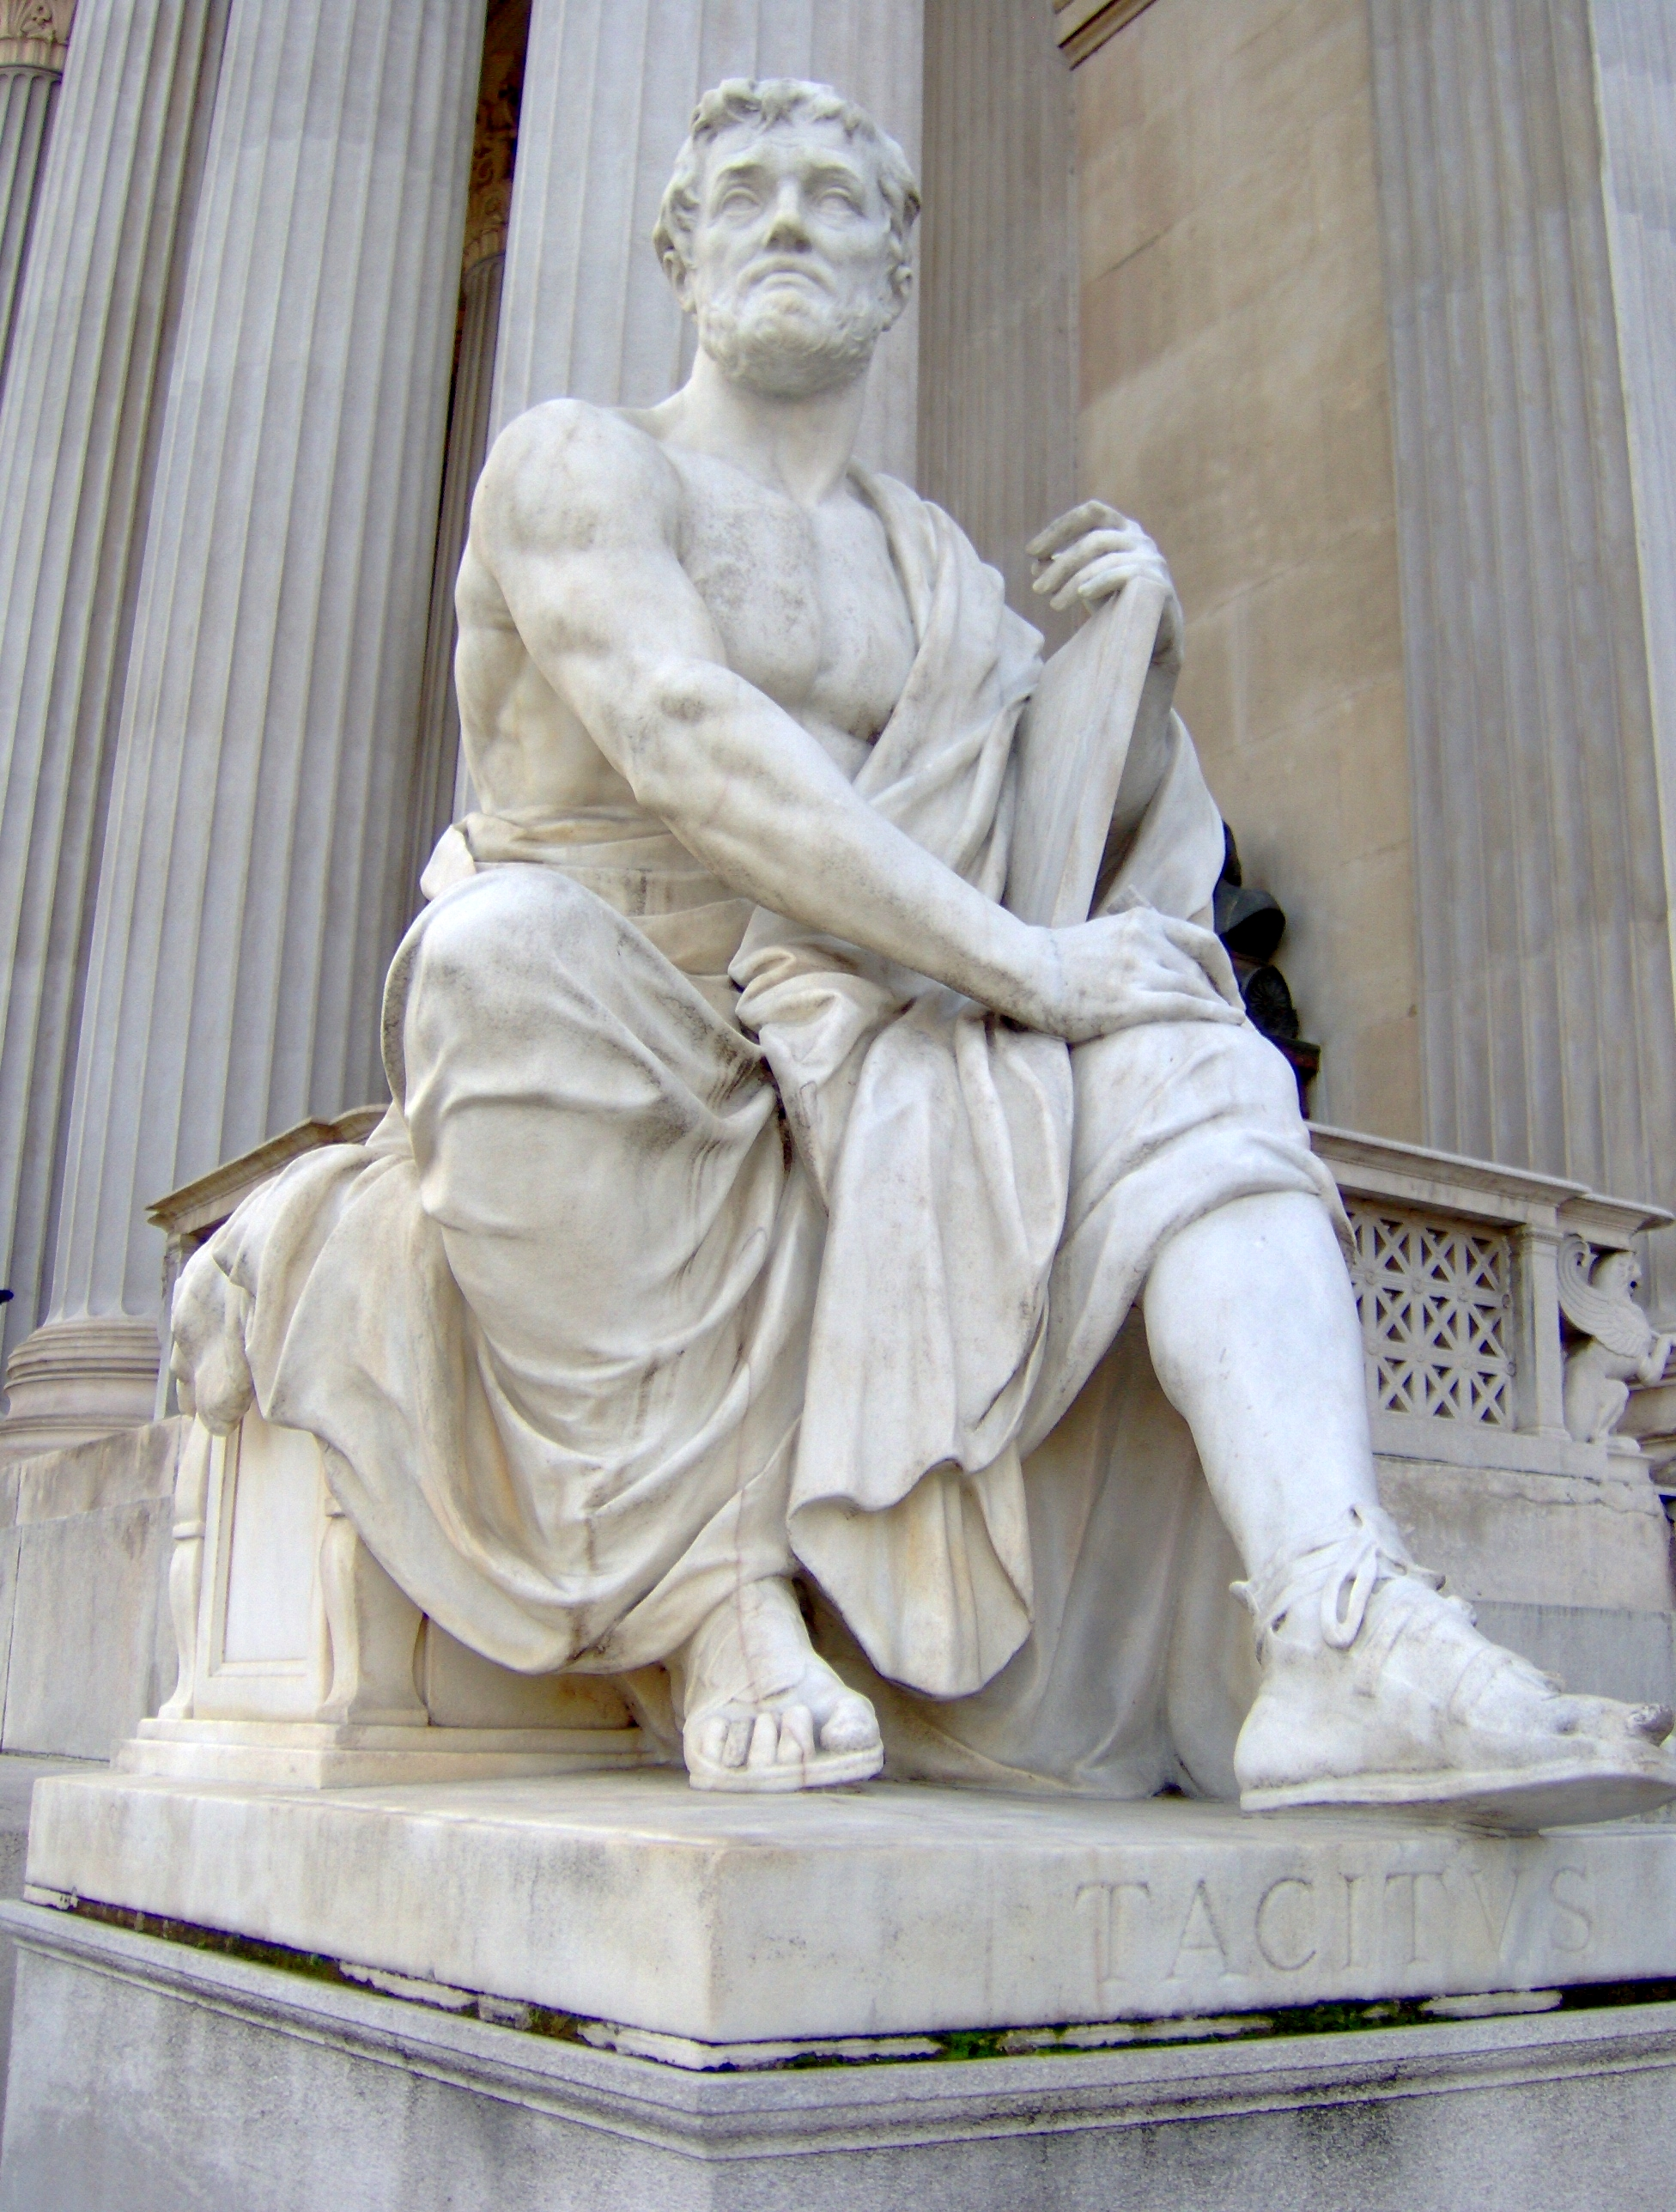 Photo of Publius (or Gaius) Cornelius Tacitus (source: Wikimedia Commons)